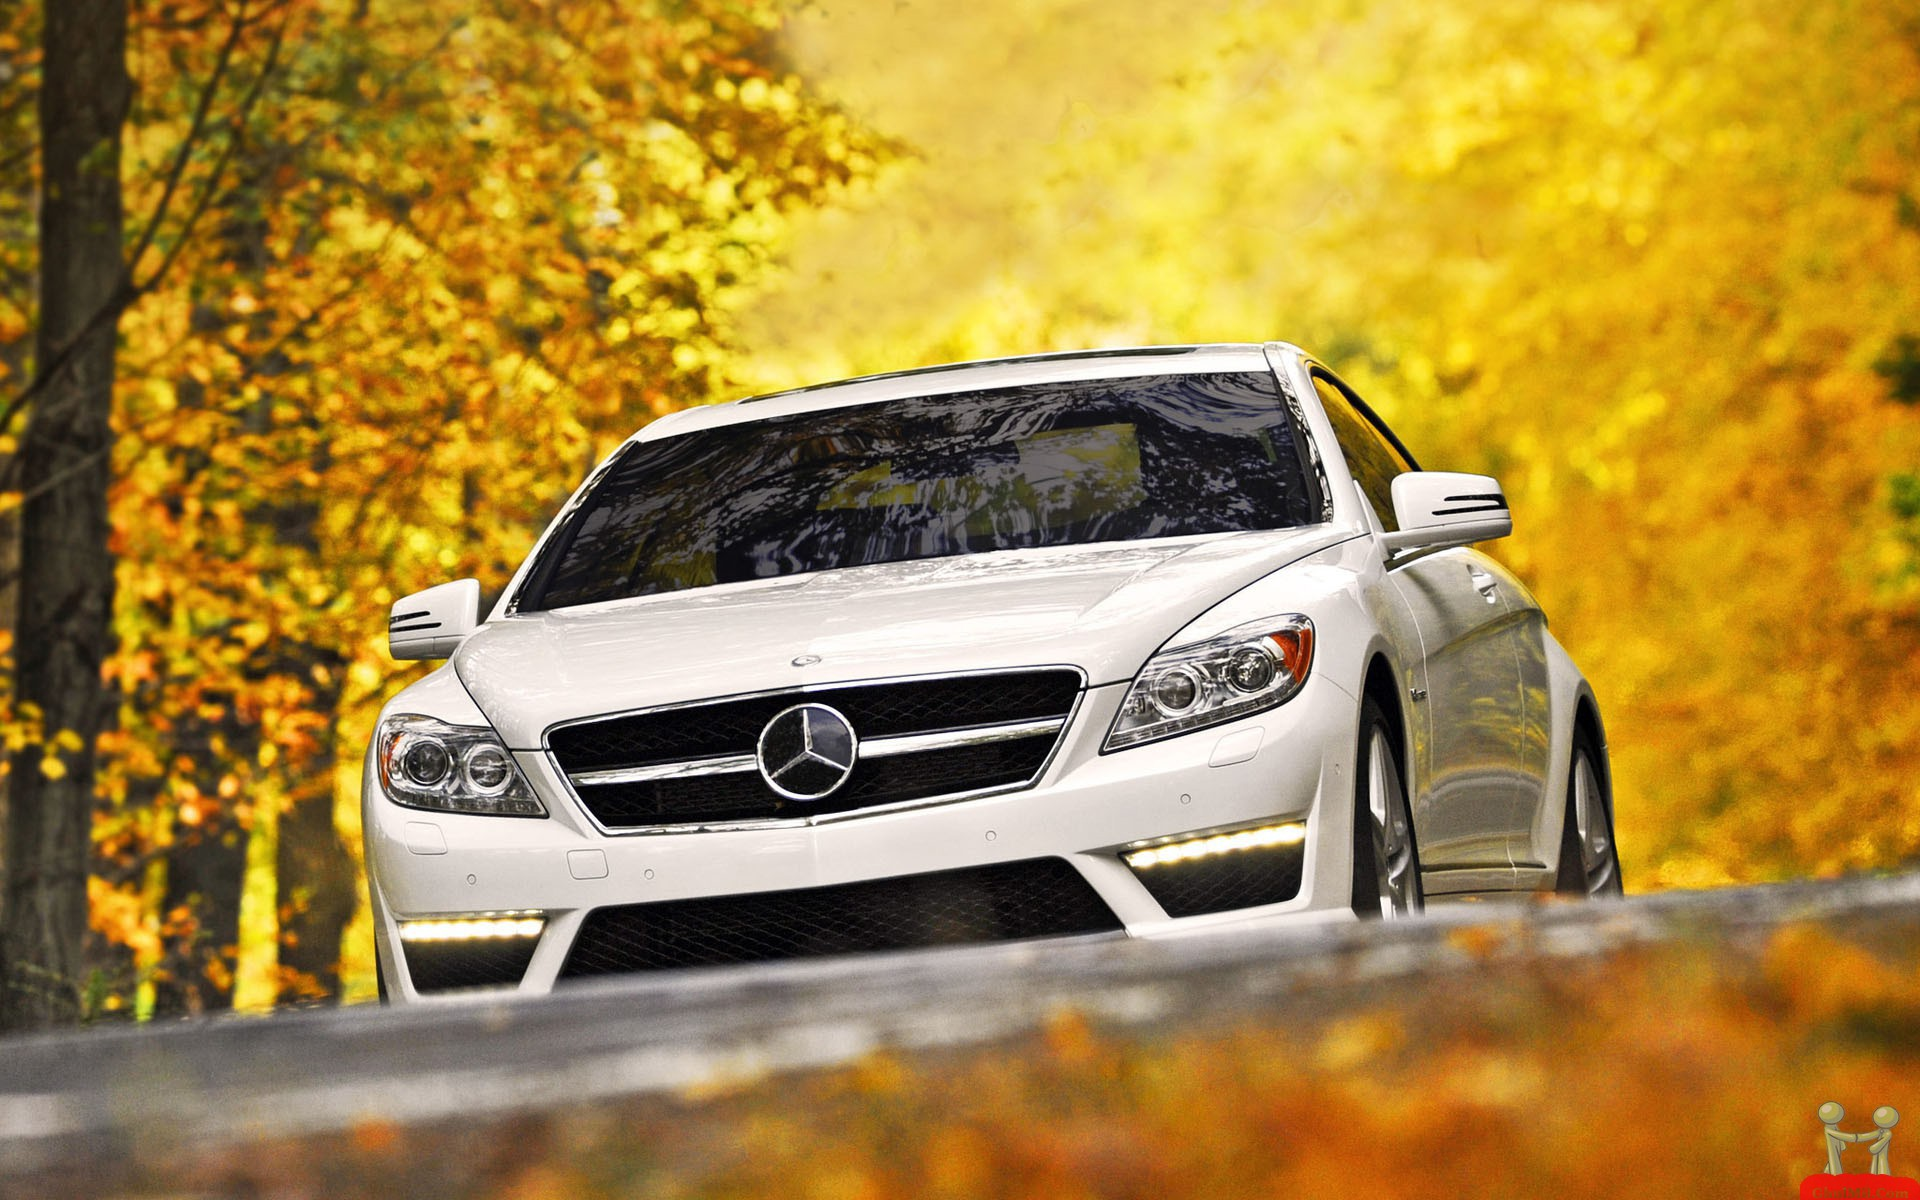 mercedes benz wallpapers beautiful wallpaper automobiles best 1920x1200